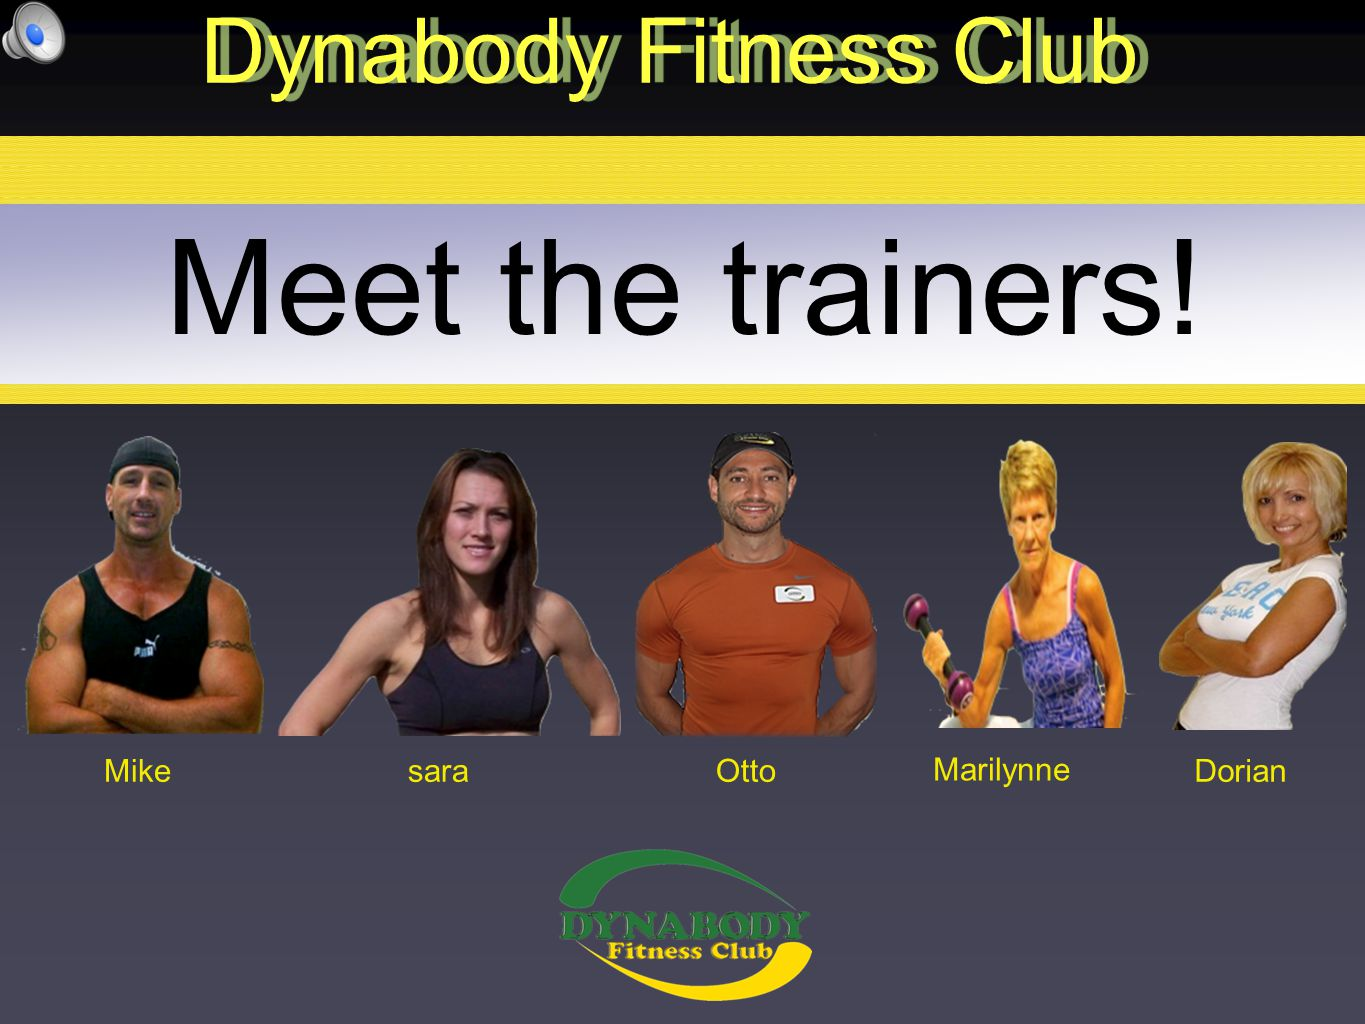 Meet the trainers! Dynabody Fitness Club MikeDorian Marilynne Ottosara